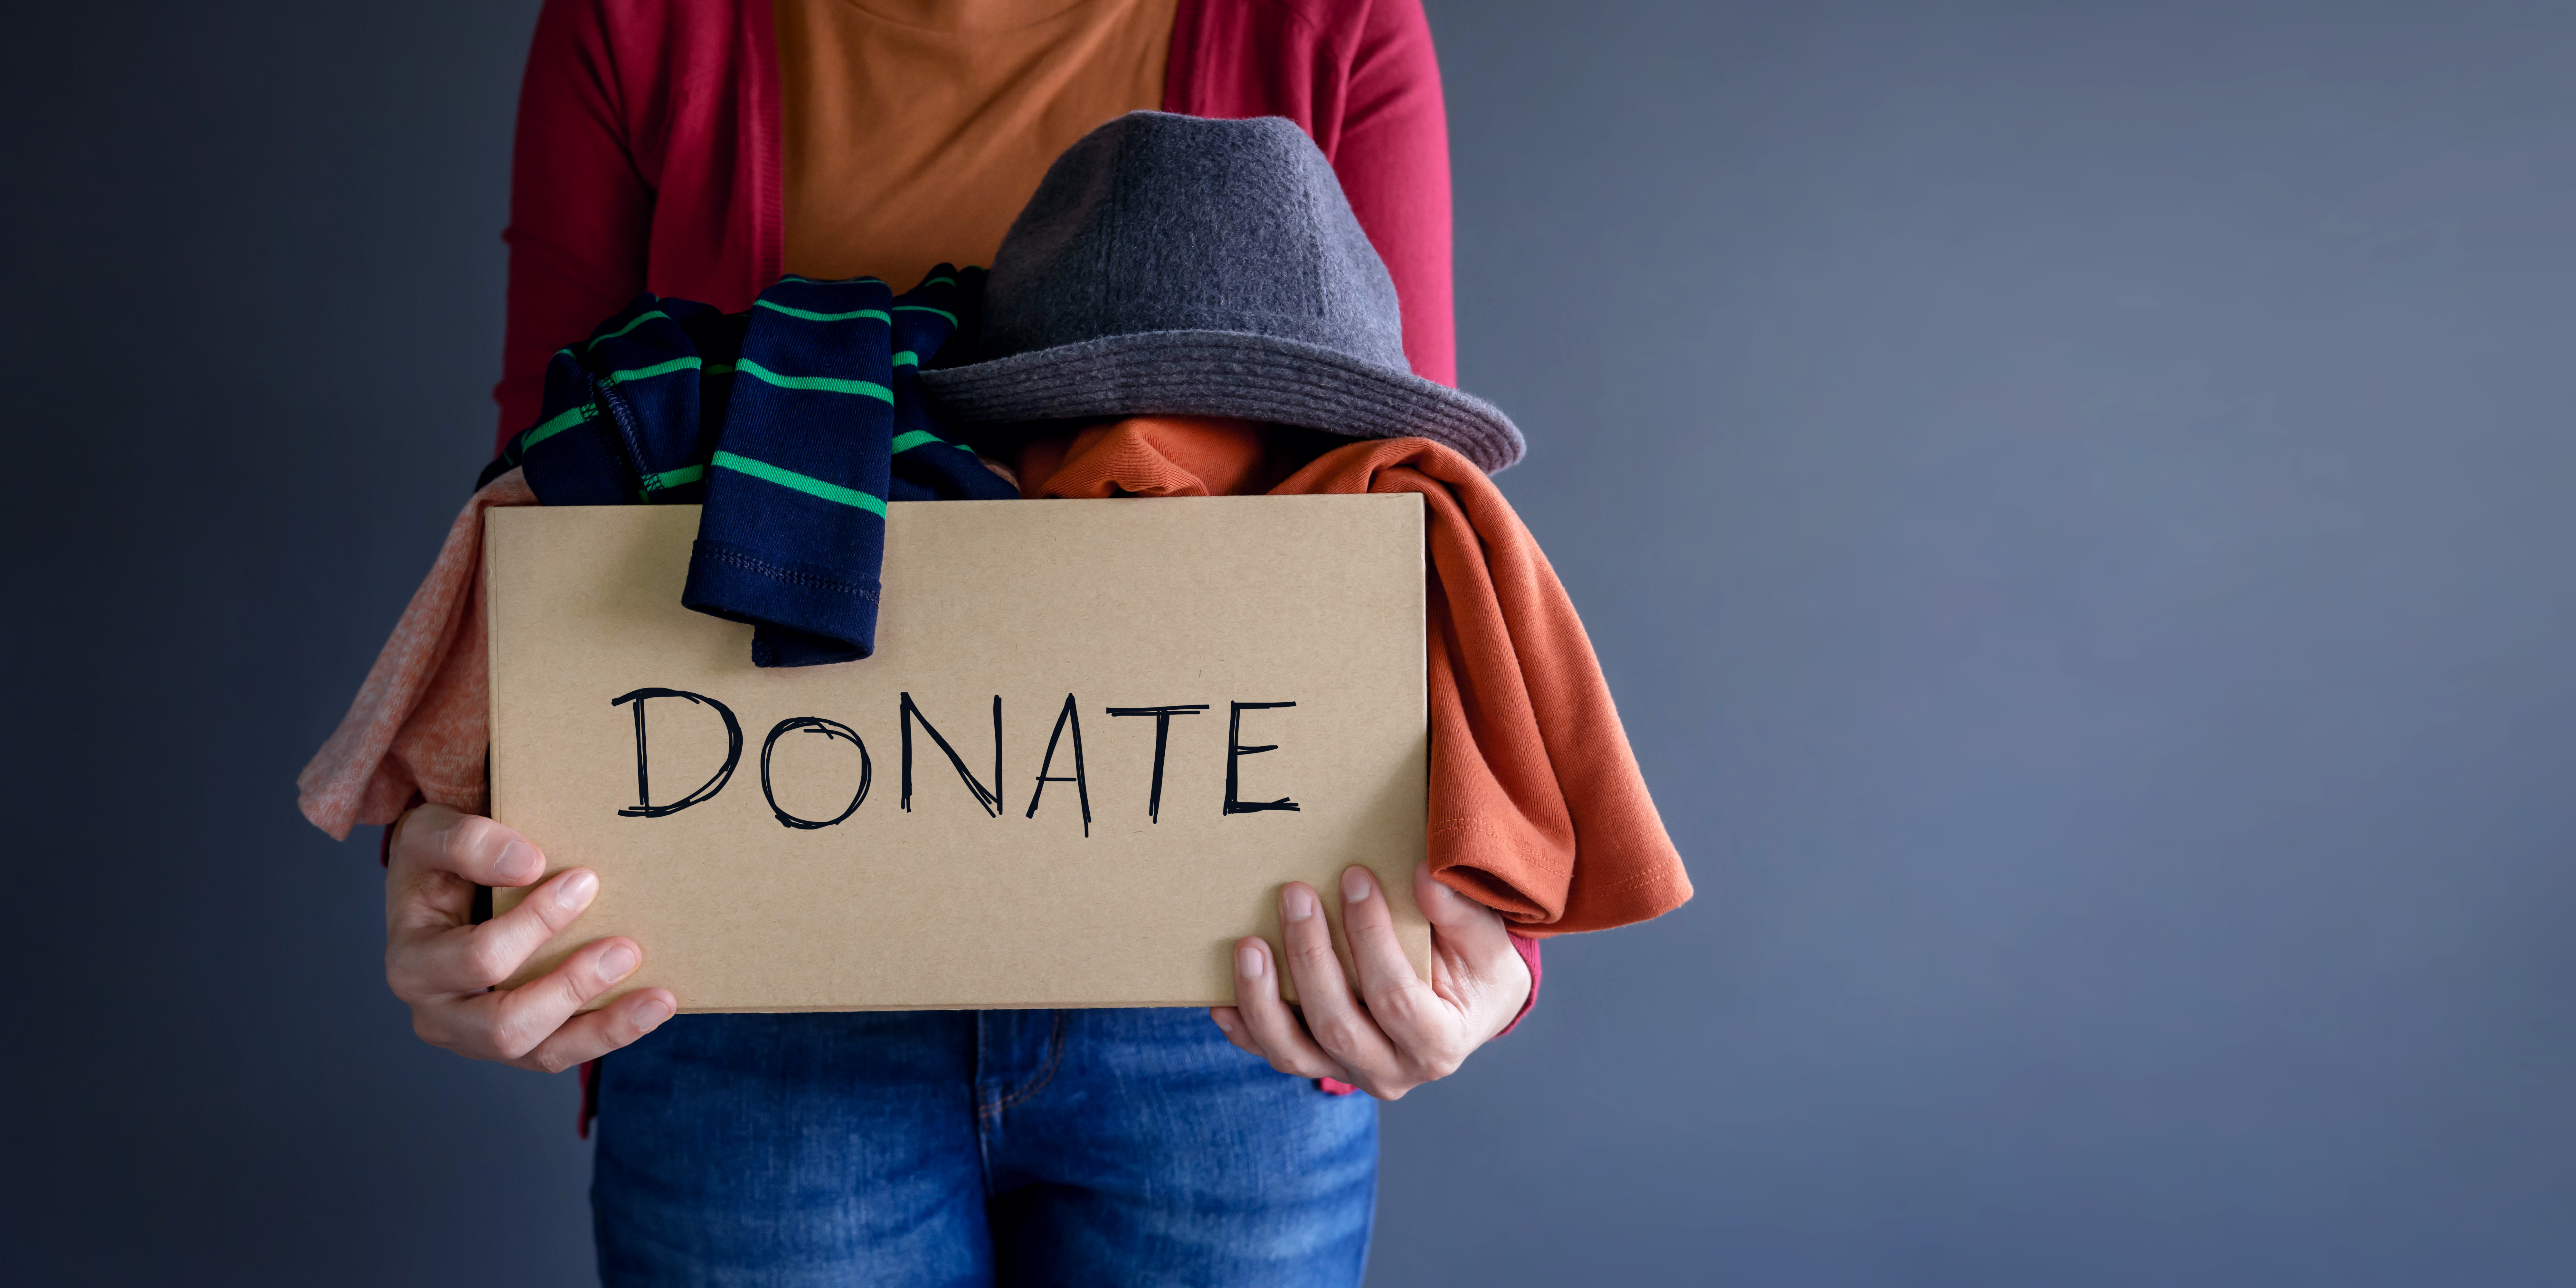 4 Things You Should and Should Not Donate on National Give Something Away Day